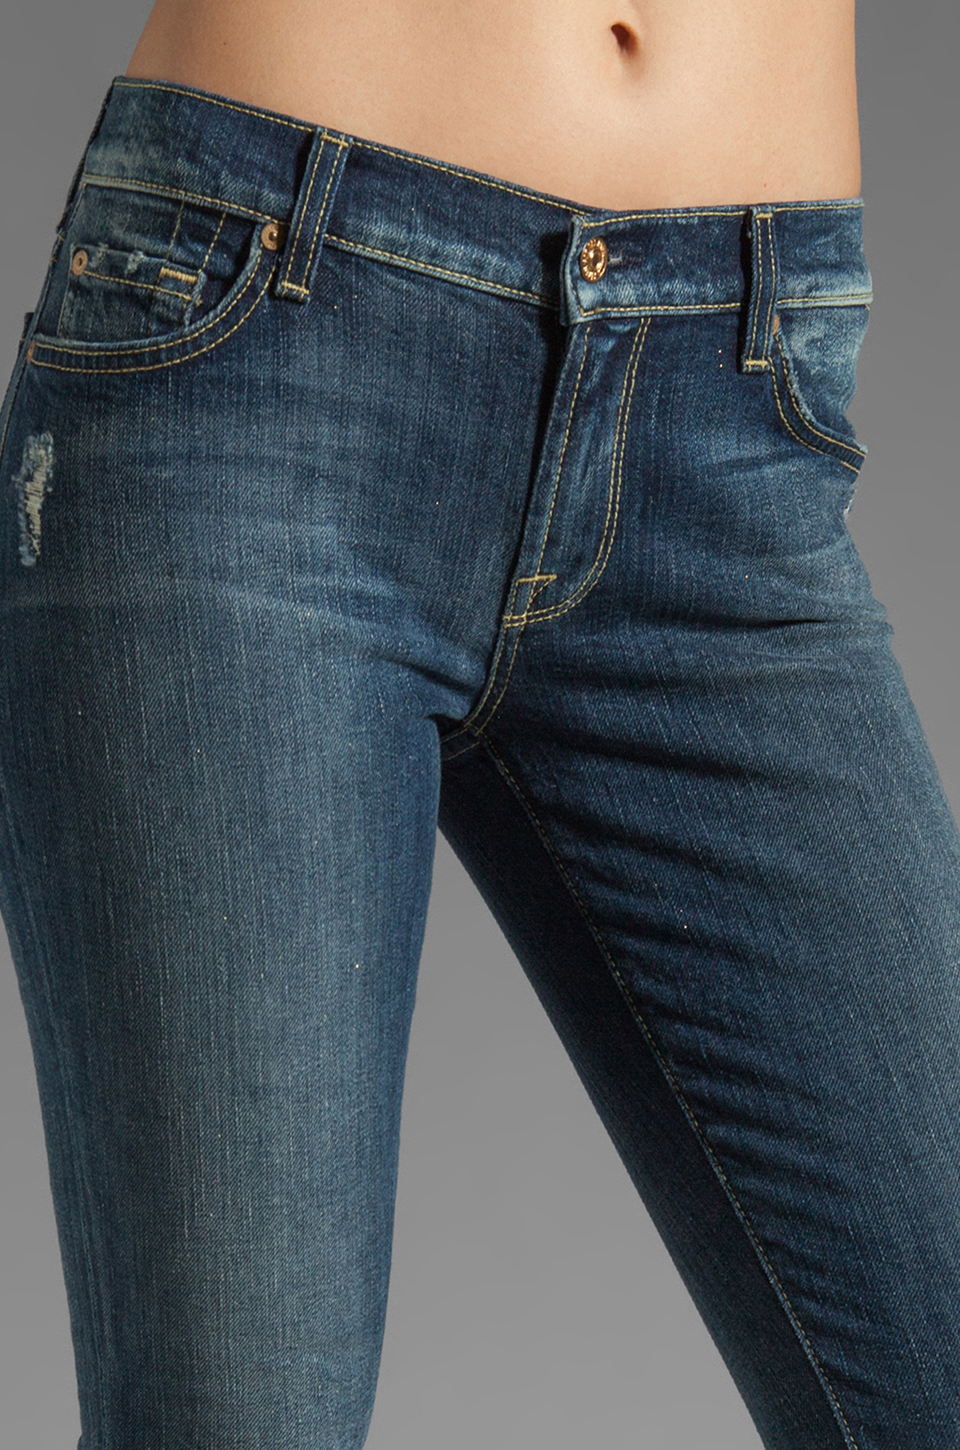 7 For All Mankind The Skinny with Squiggle in Grinded Blue